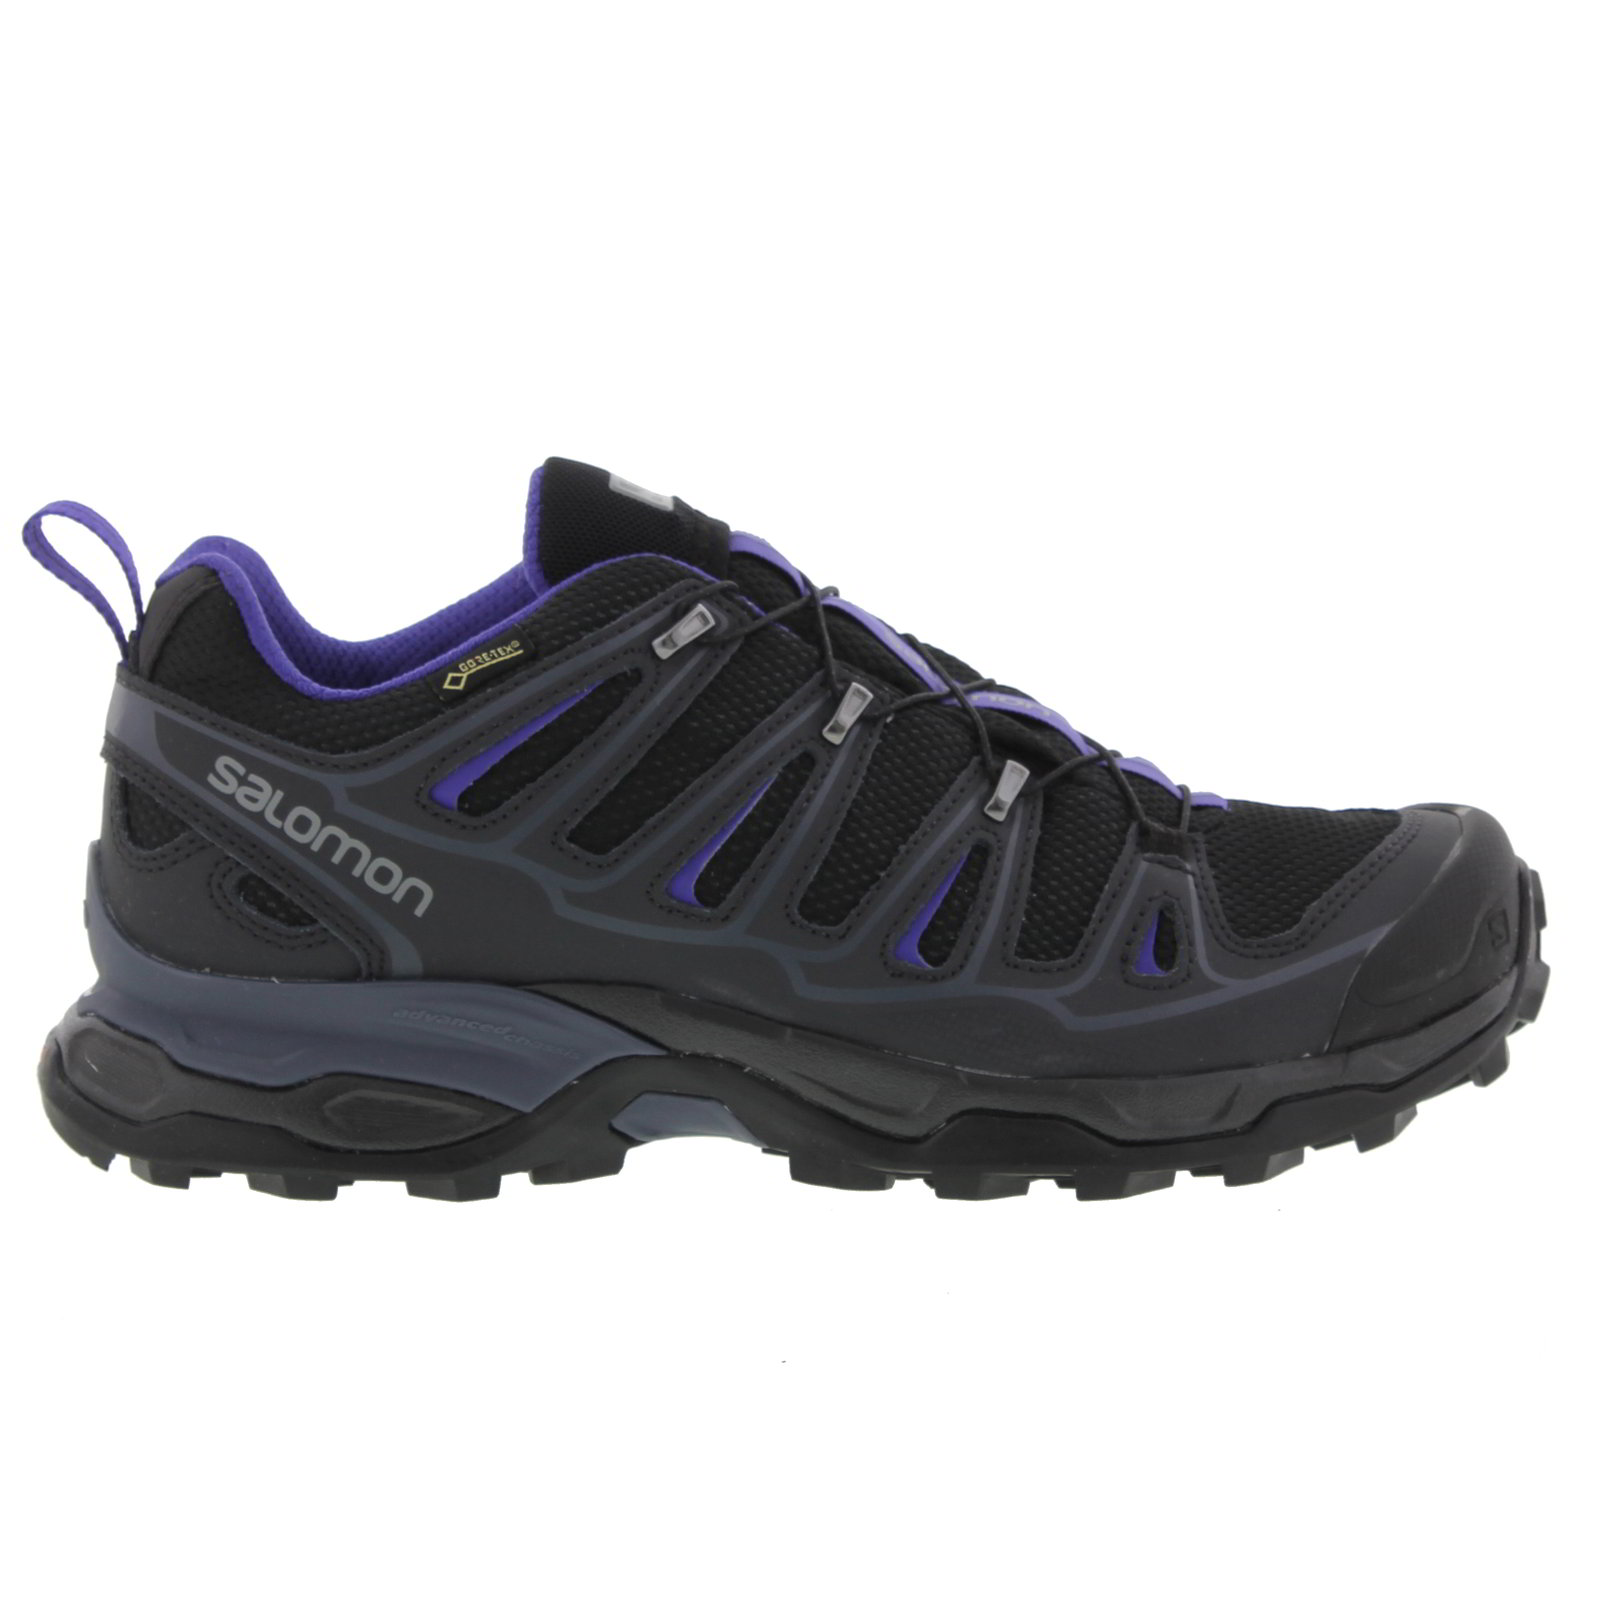 Salomon Water Resistant Trail Hiking Shoes Women